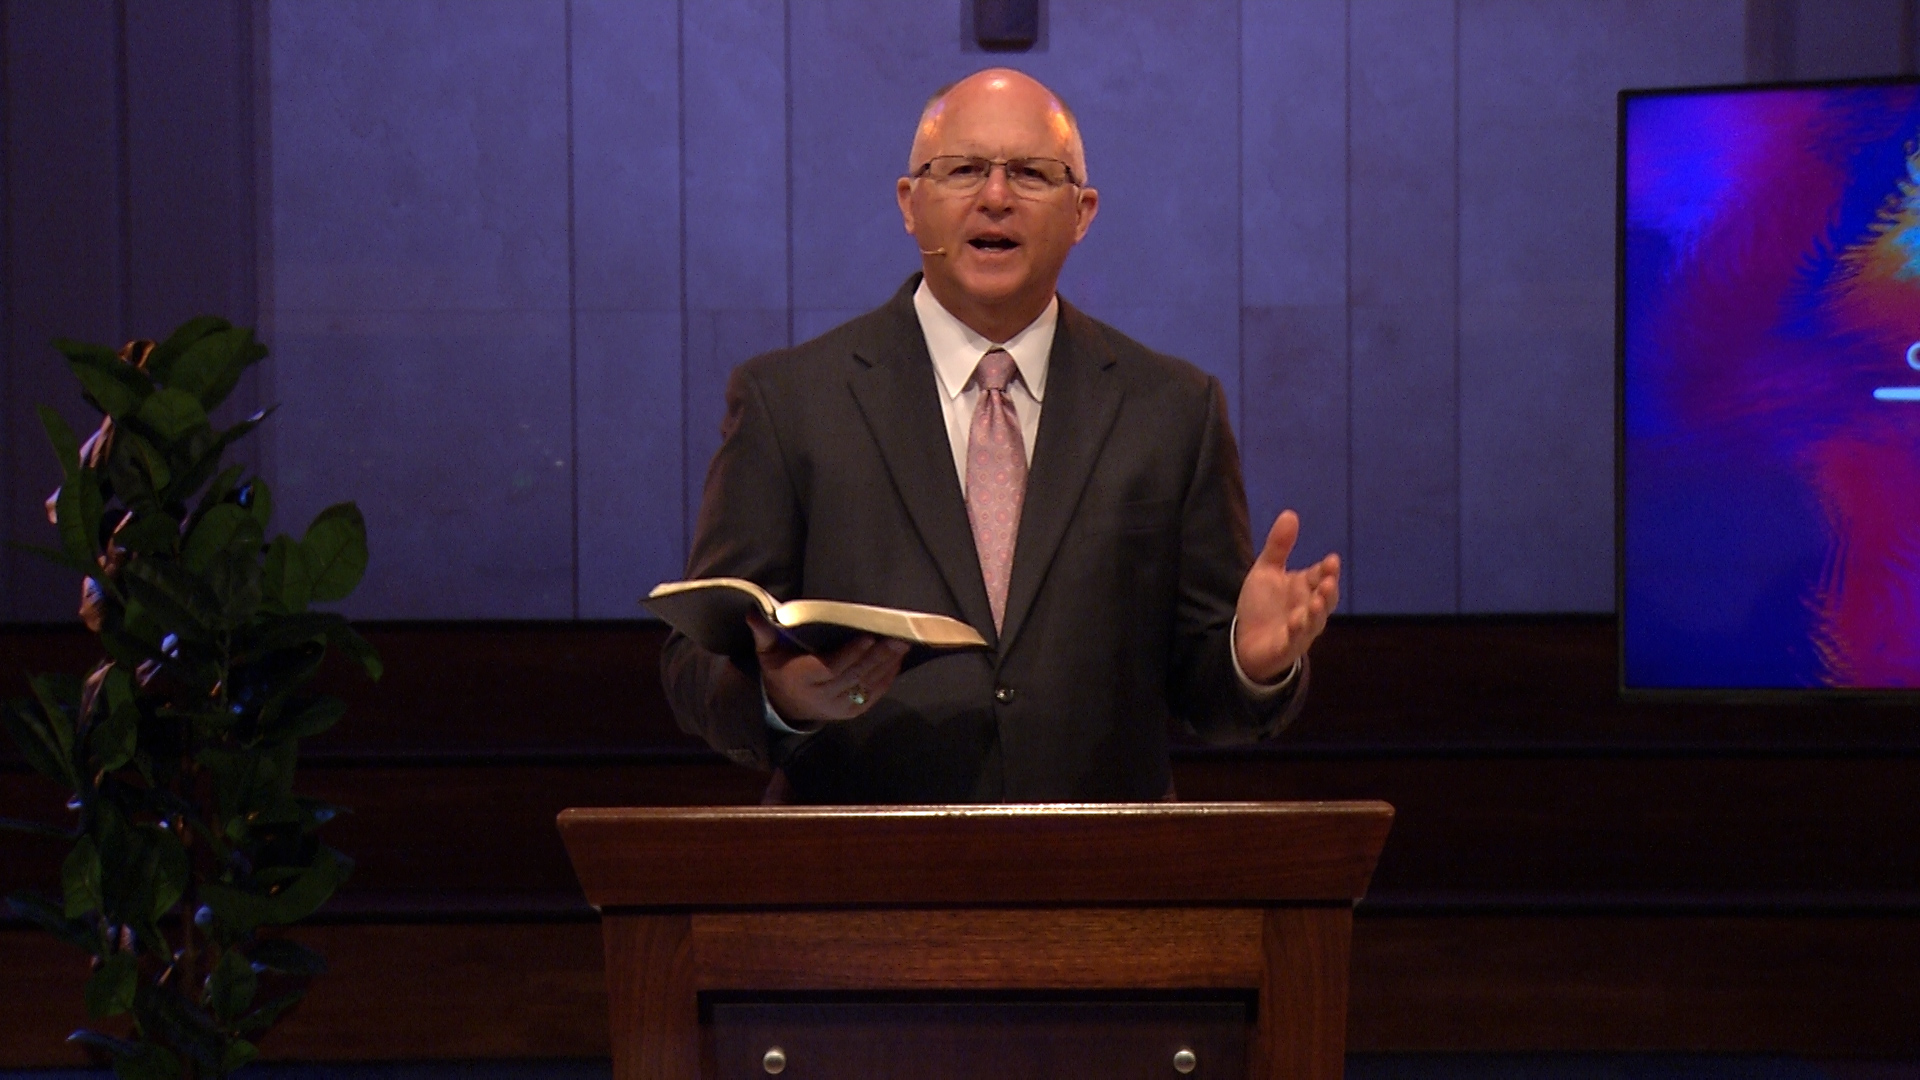 Pastor Paul Chappell: Only Jesus Conquers Temptation